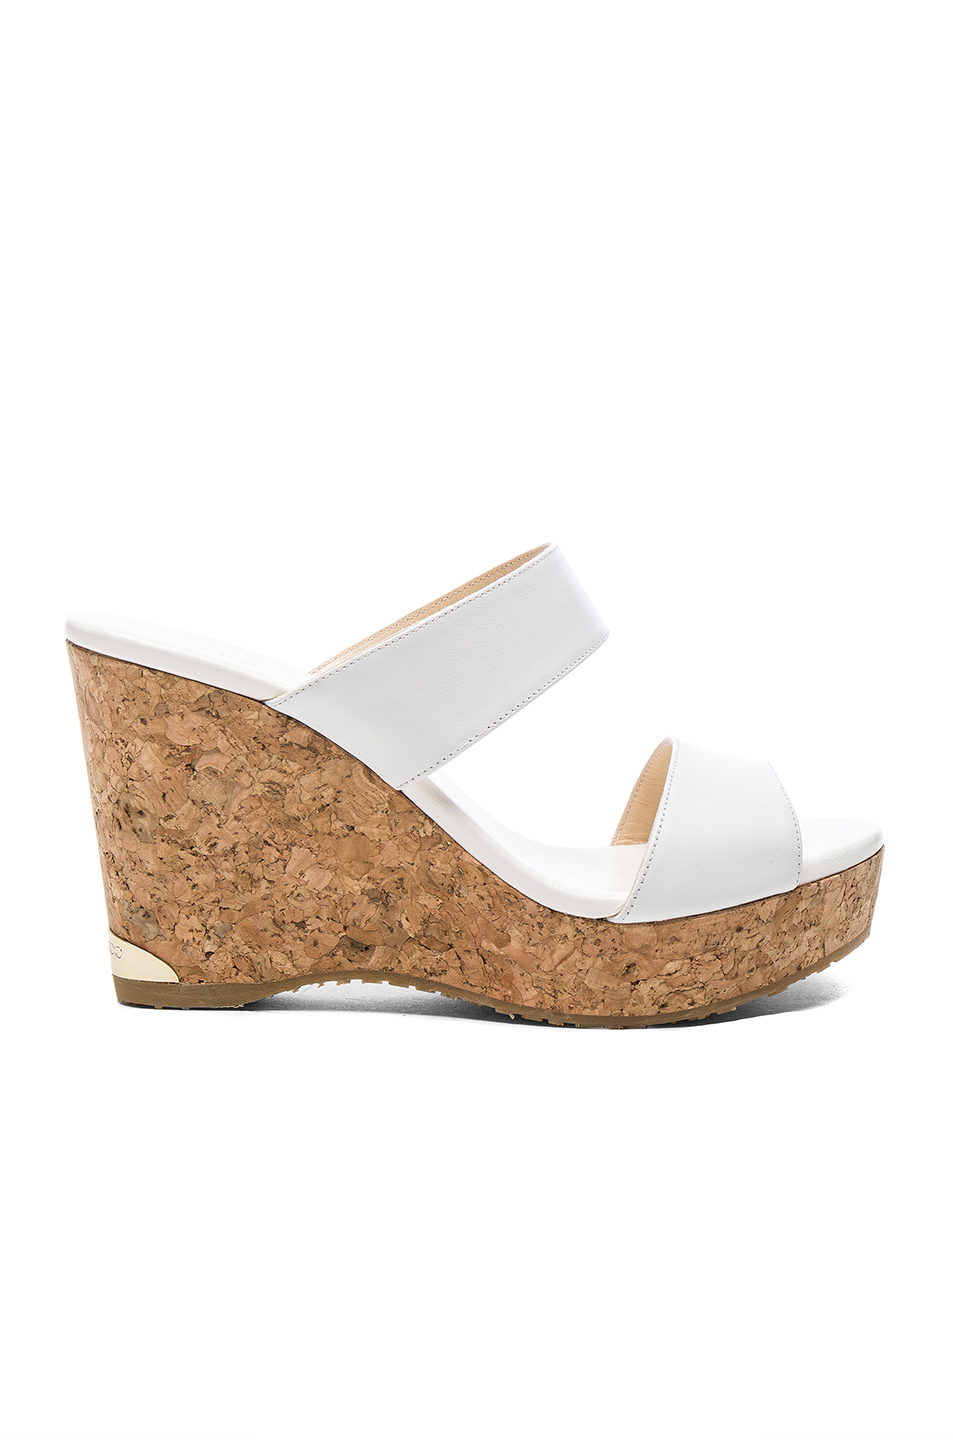 6551709ace3 Jimmy Choo Parker Two-Band Cork Wedge Sandal In White